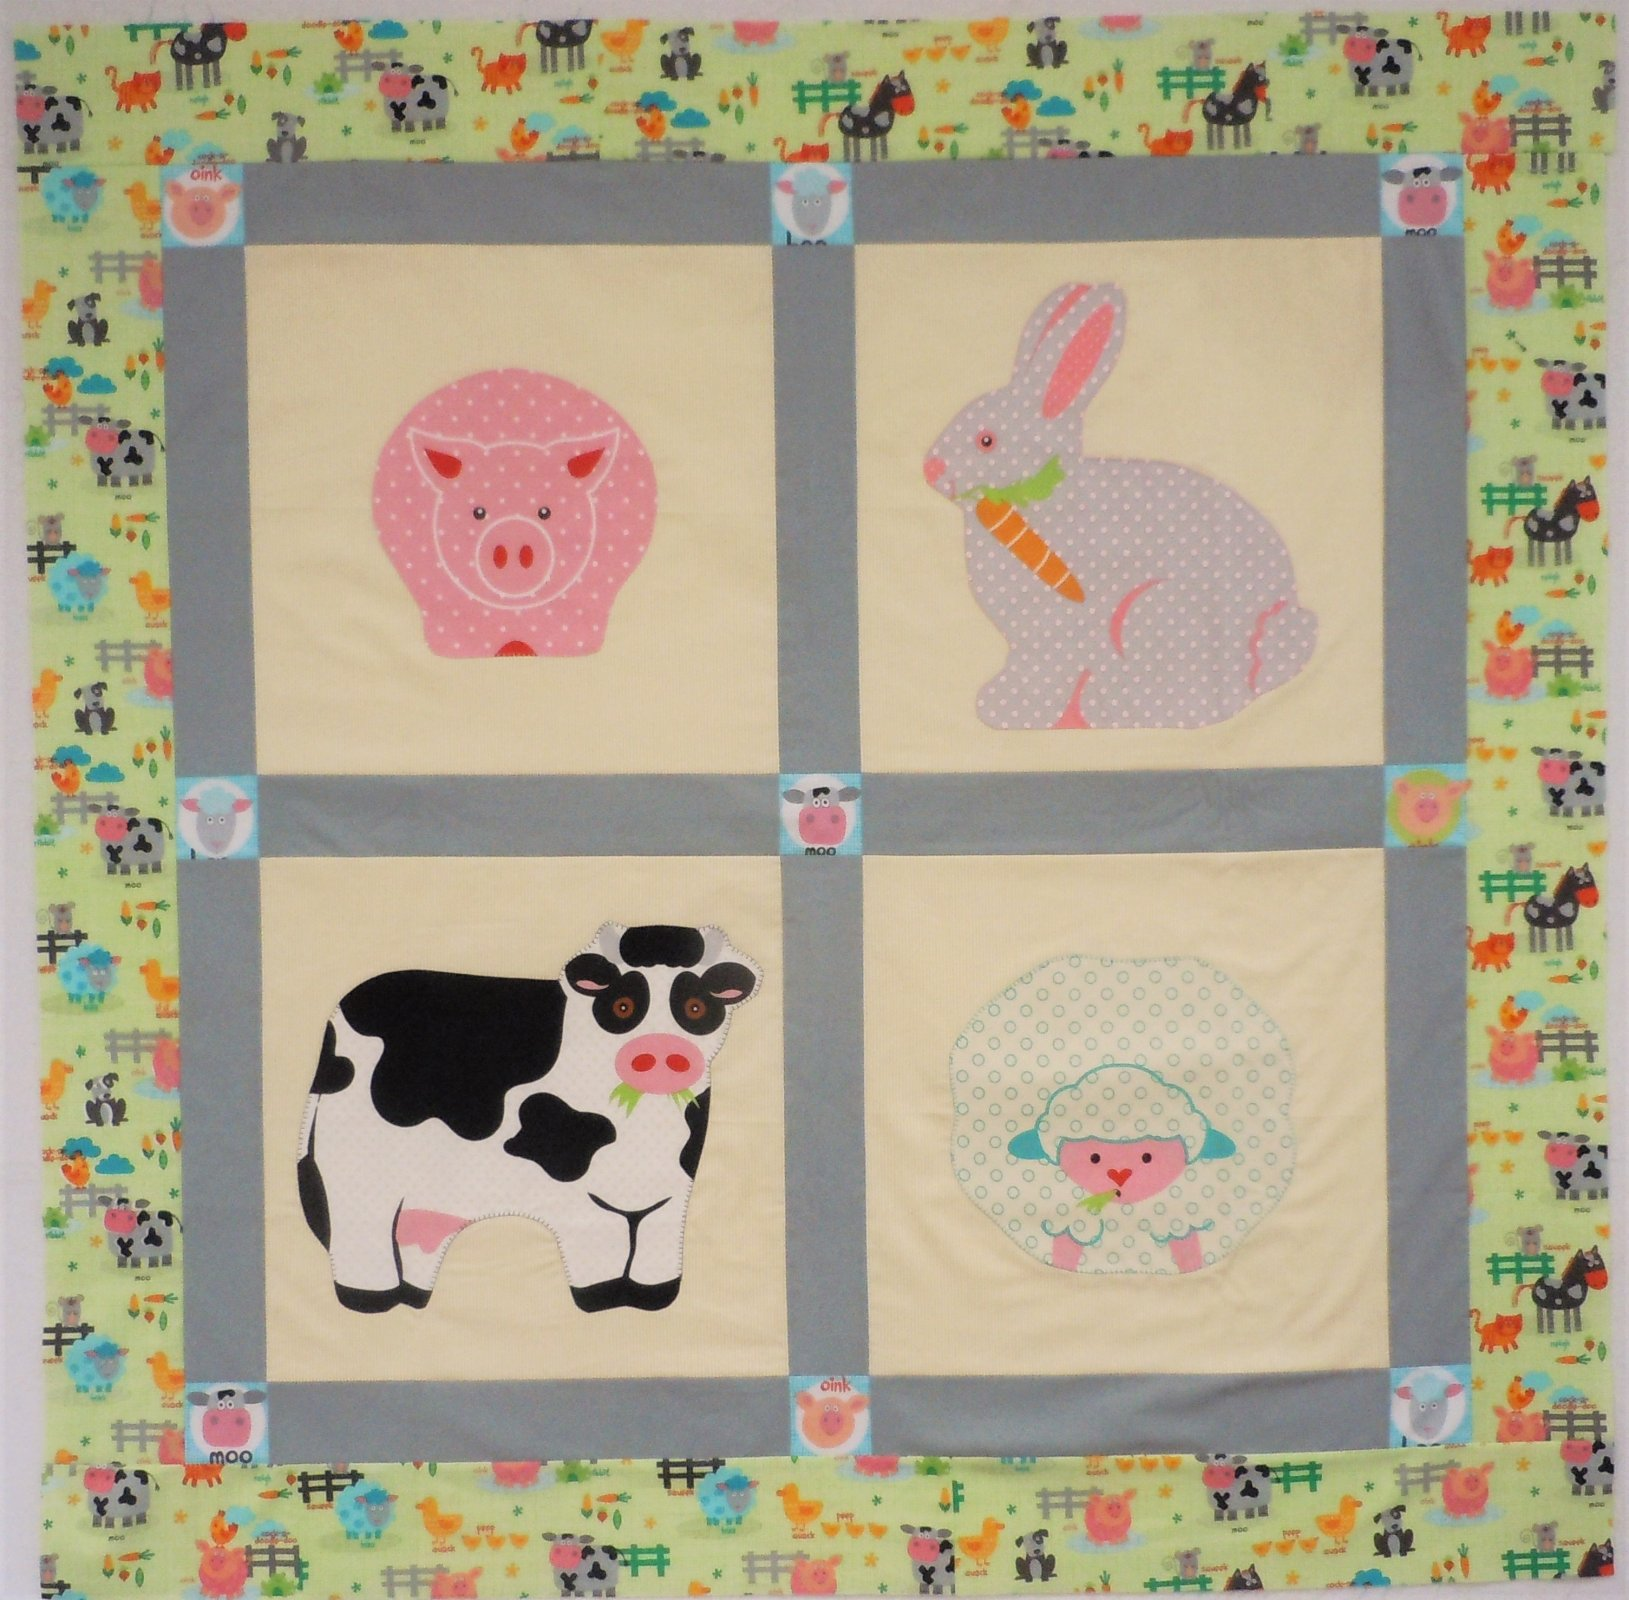 Kit-Snuggles Baby Quilt 48wide x 48 long (Double Sided)